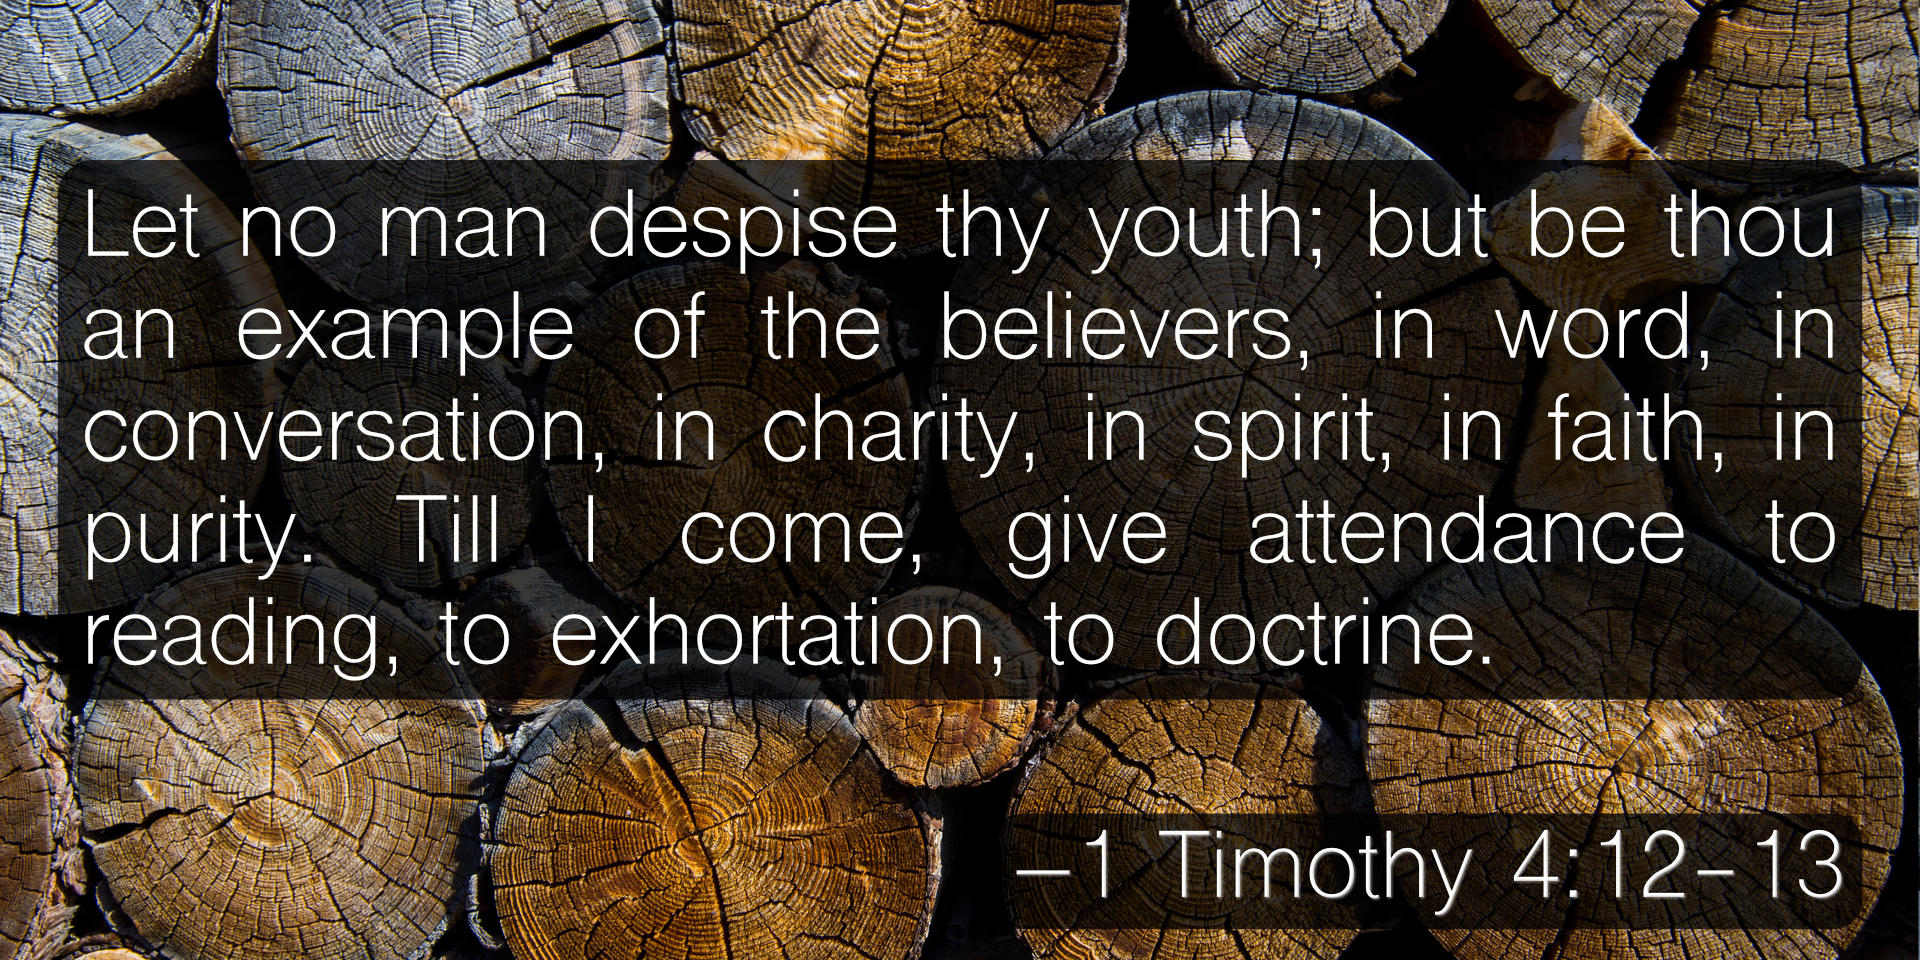 Let no man despise thy youth; but be thou an example of the believers, in word, in conversation, in charity, in spirit, in faith, in purity. Till I come, give attendance to reading, to exhortation, to doctrine. –1 Timothy 4:12-13